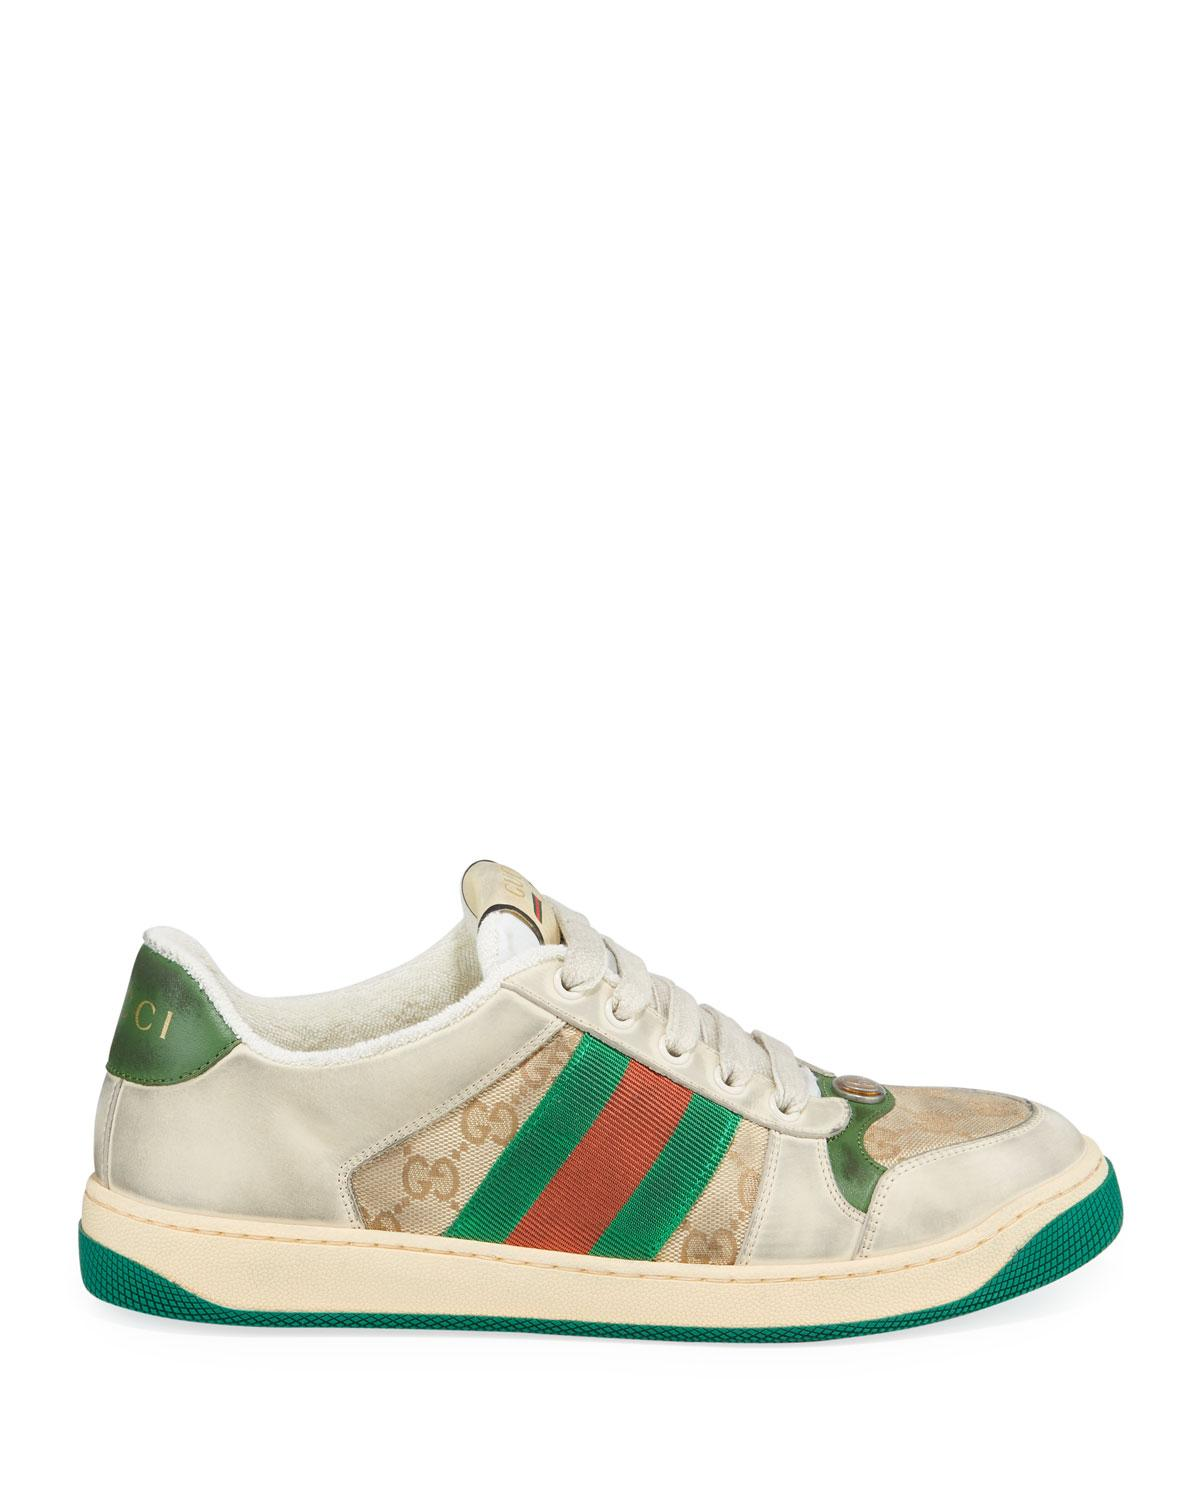 dad4dca6d8a Gucci - White Virtus Distressed Leather And Webbing Sneakers for Men -  Lyst. View fullscreen